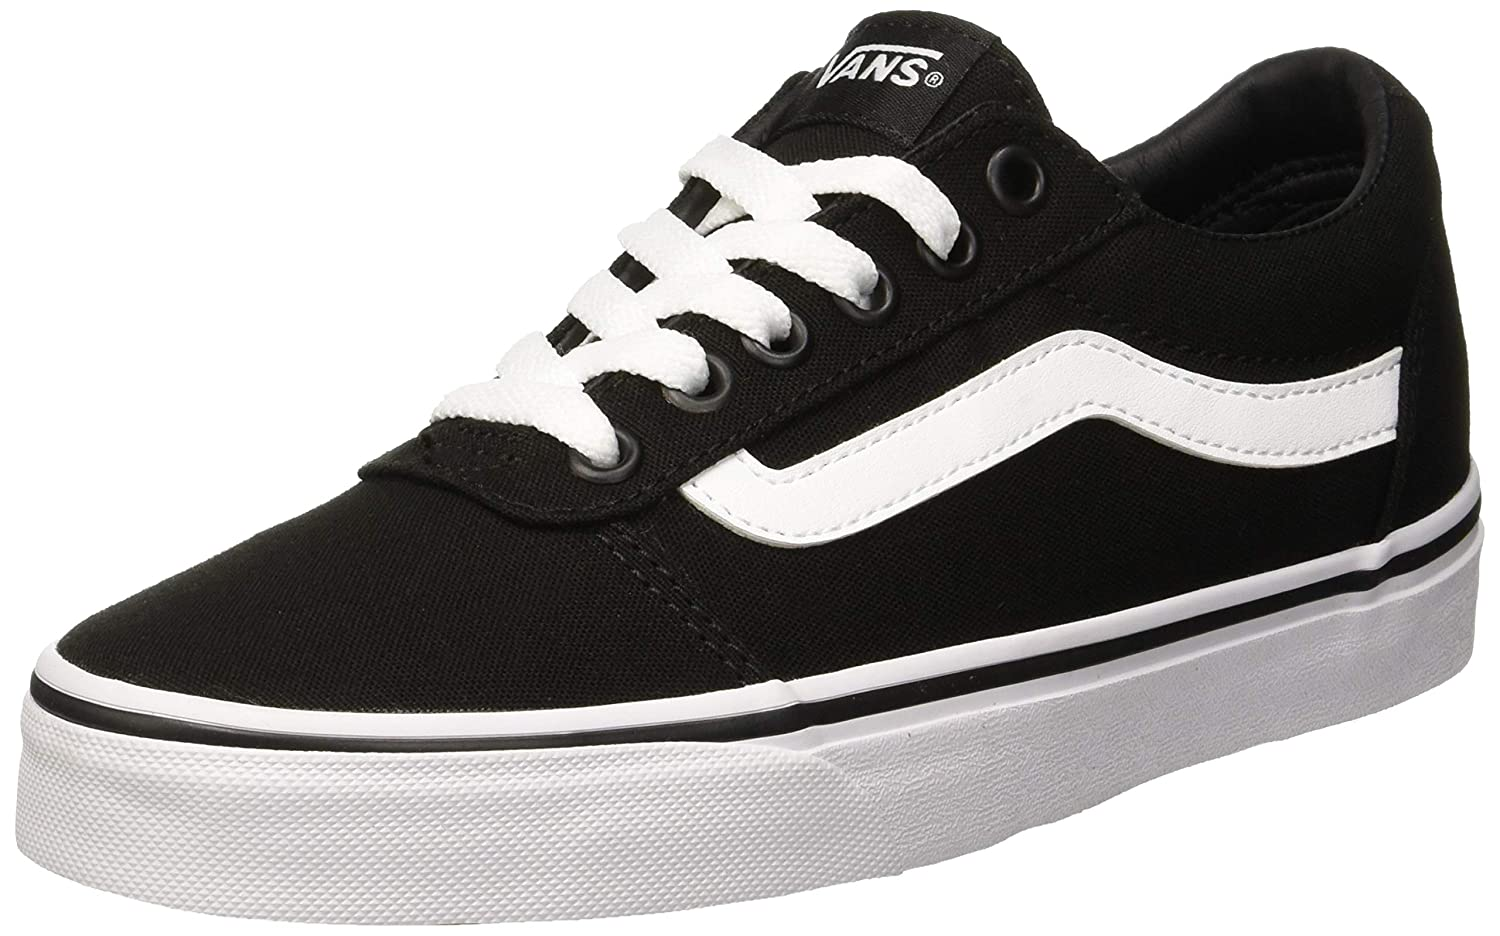 Vans Women's Ward Canvas Low-Top Sneakers